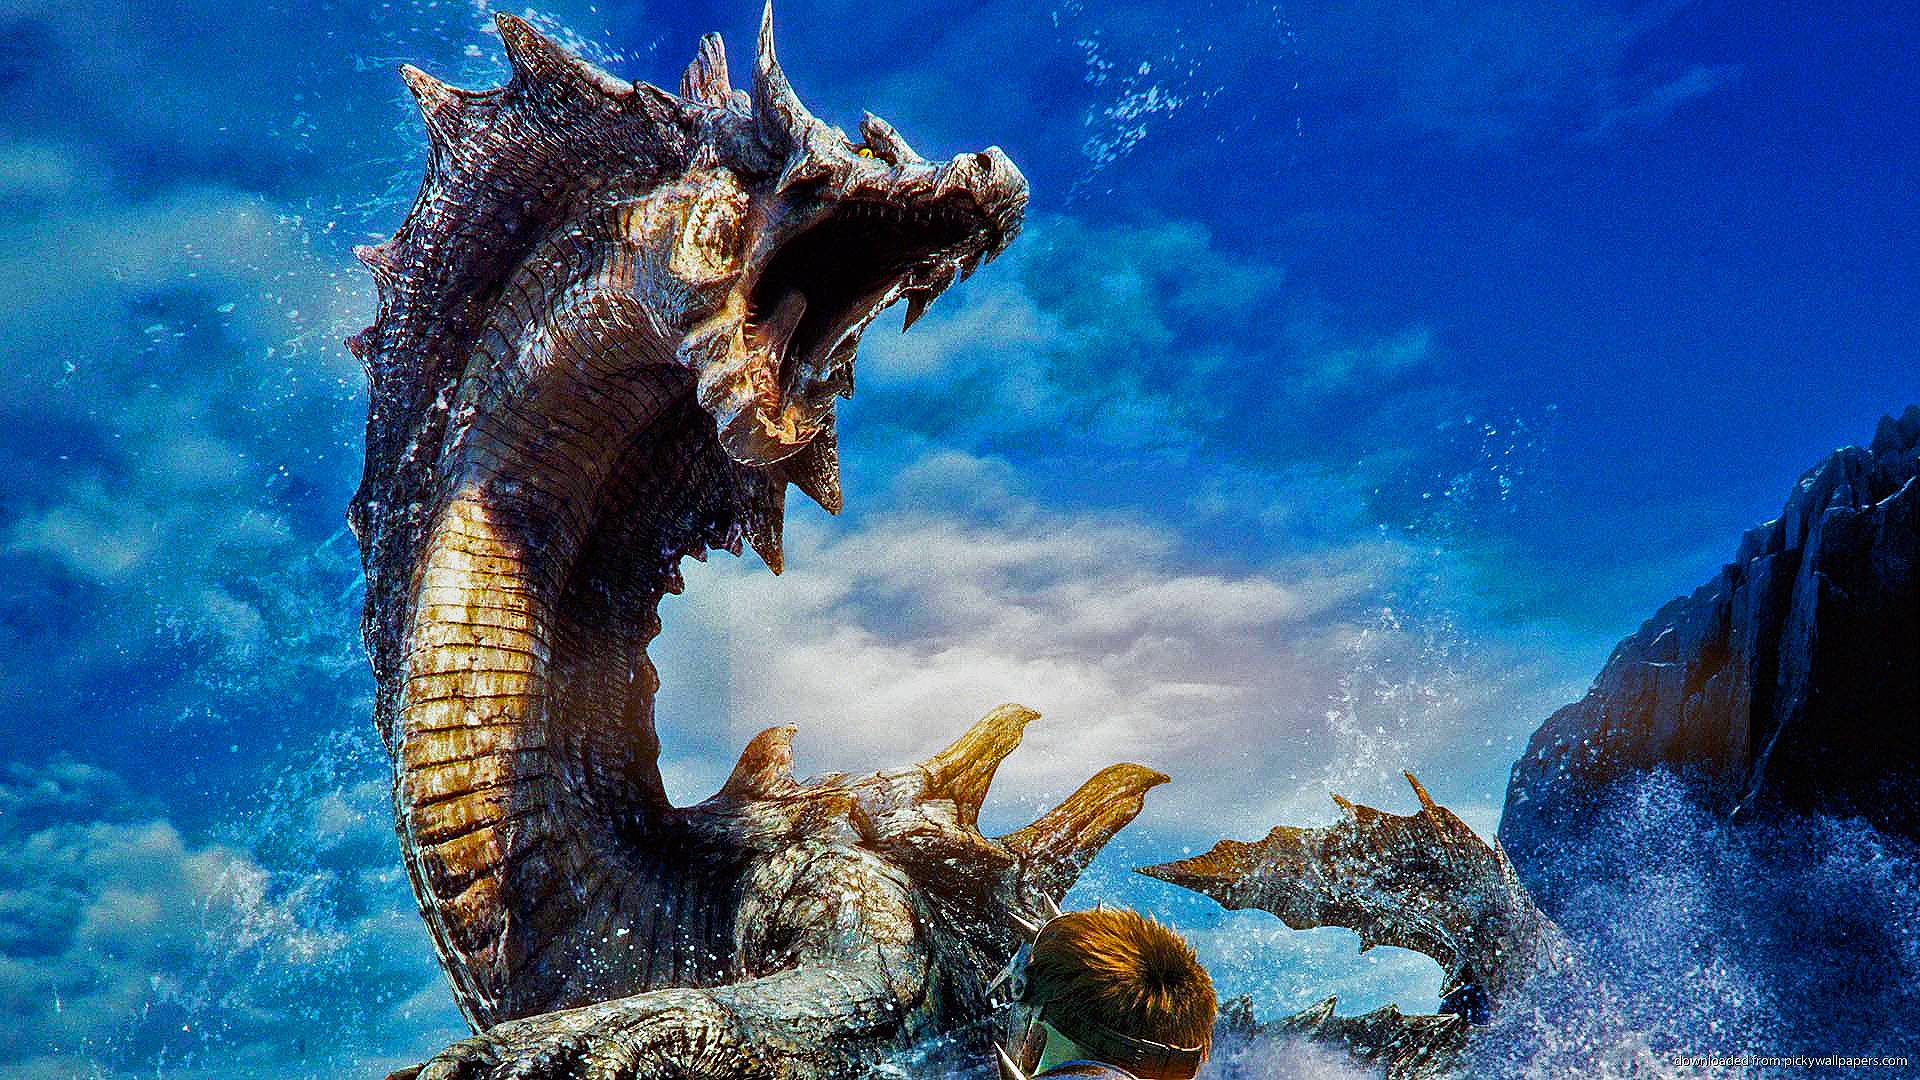 Monster Hunter 3 Ultimate wallpaper hd GamingBoltcom Video Game 1920x1080